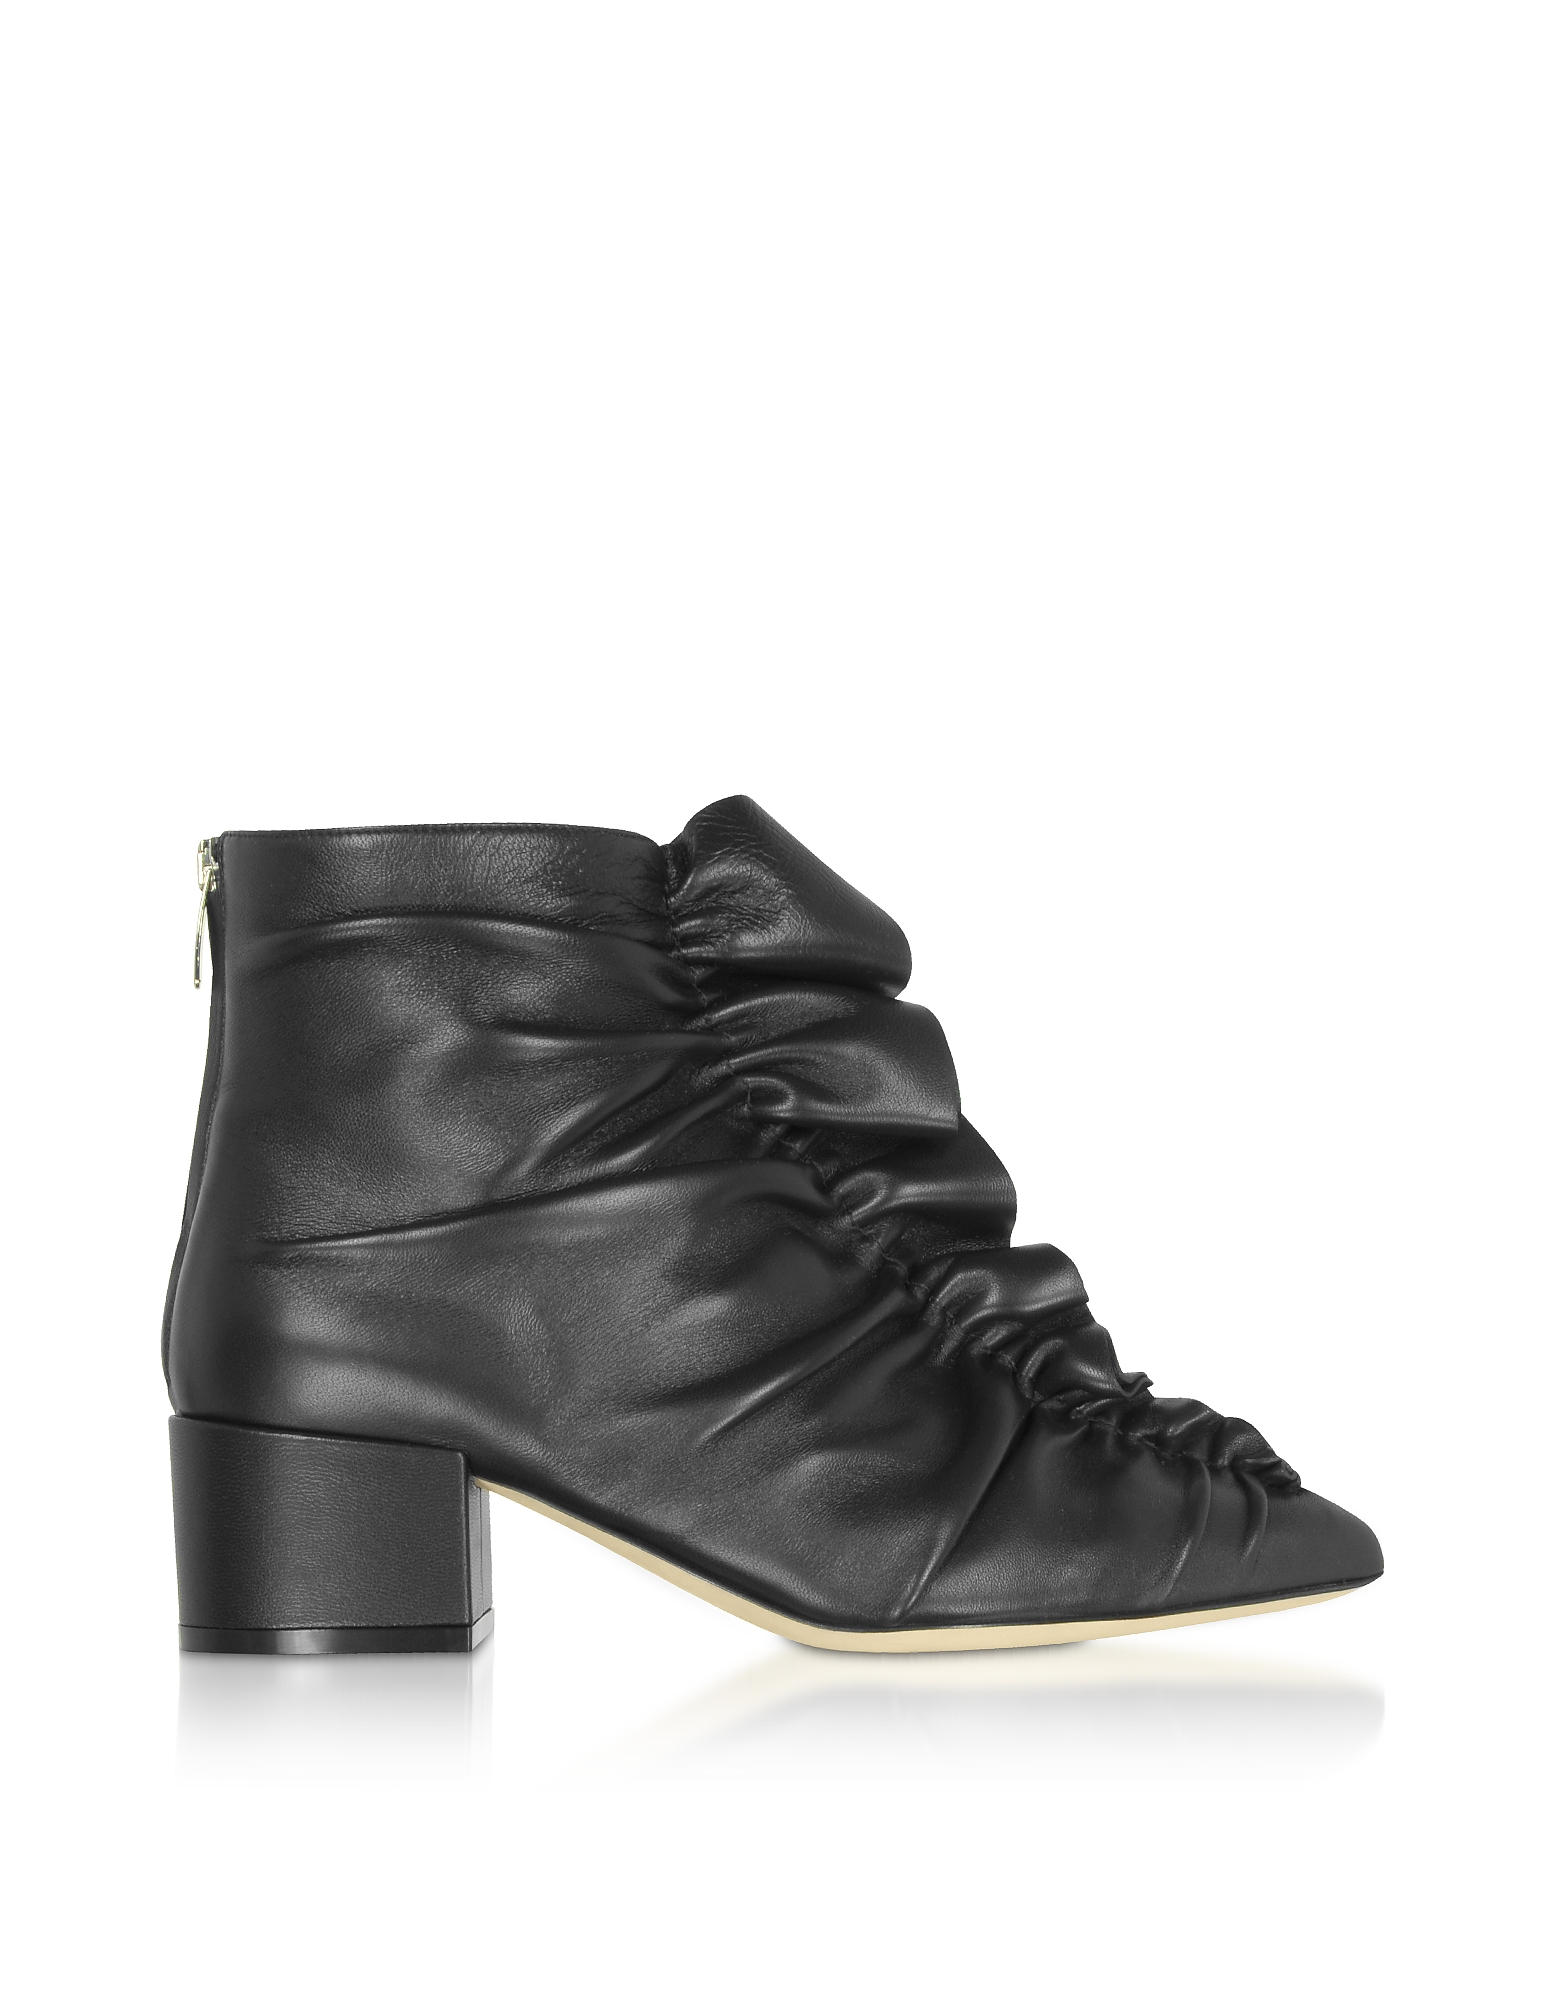 Sergio Rossi Designer Shoes, Sergio Black Light Ankle Boots